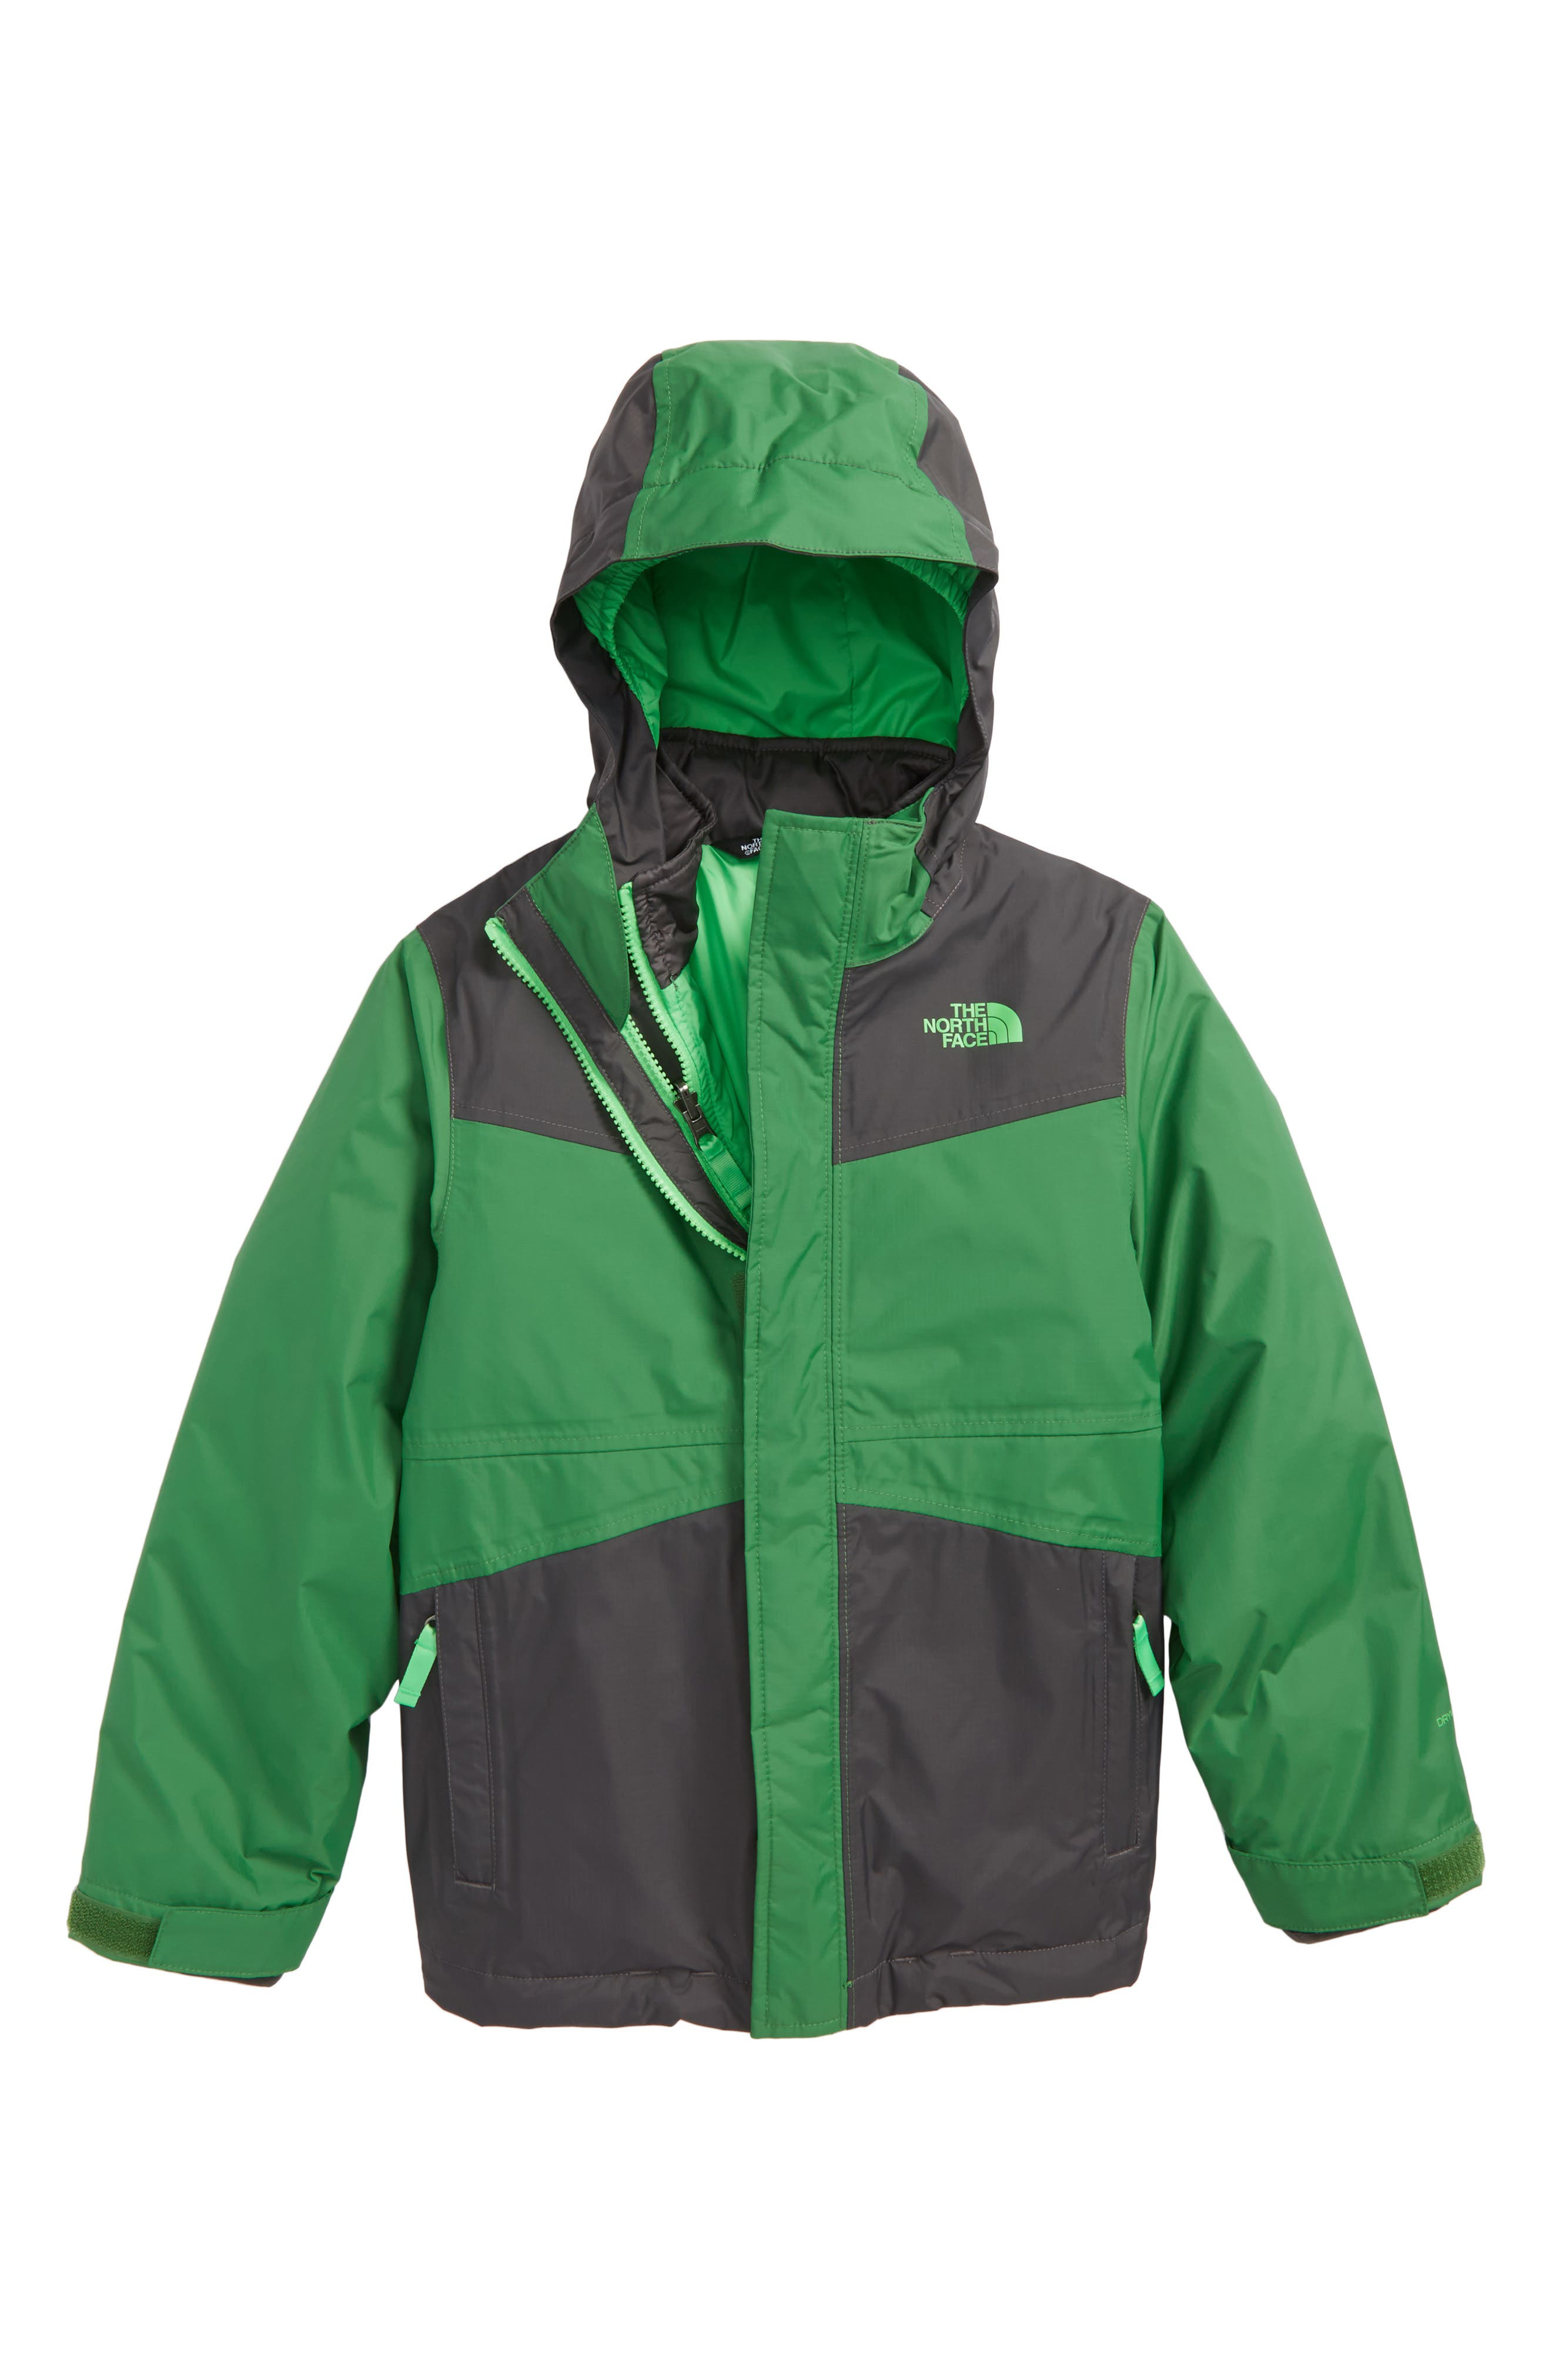 Alternate Image 1 Selected - The North Face East Ridge Triclimate® Waterproof 3-in-1 Jacket (Big Boys)